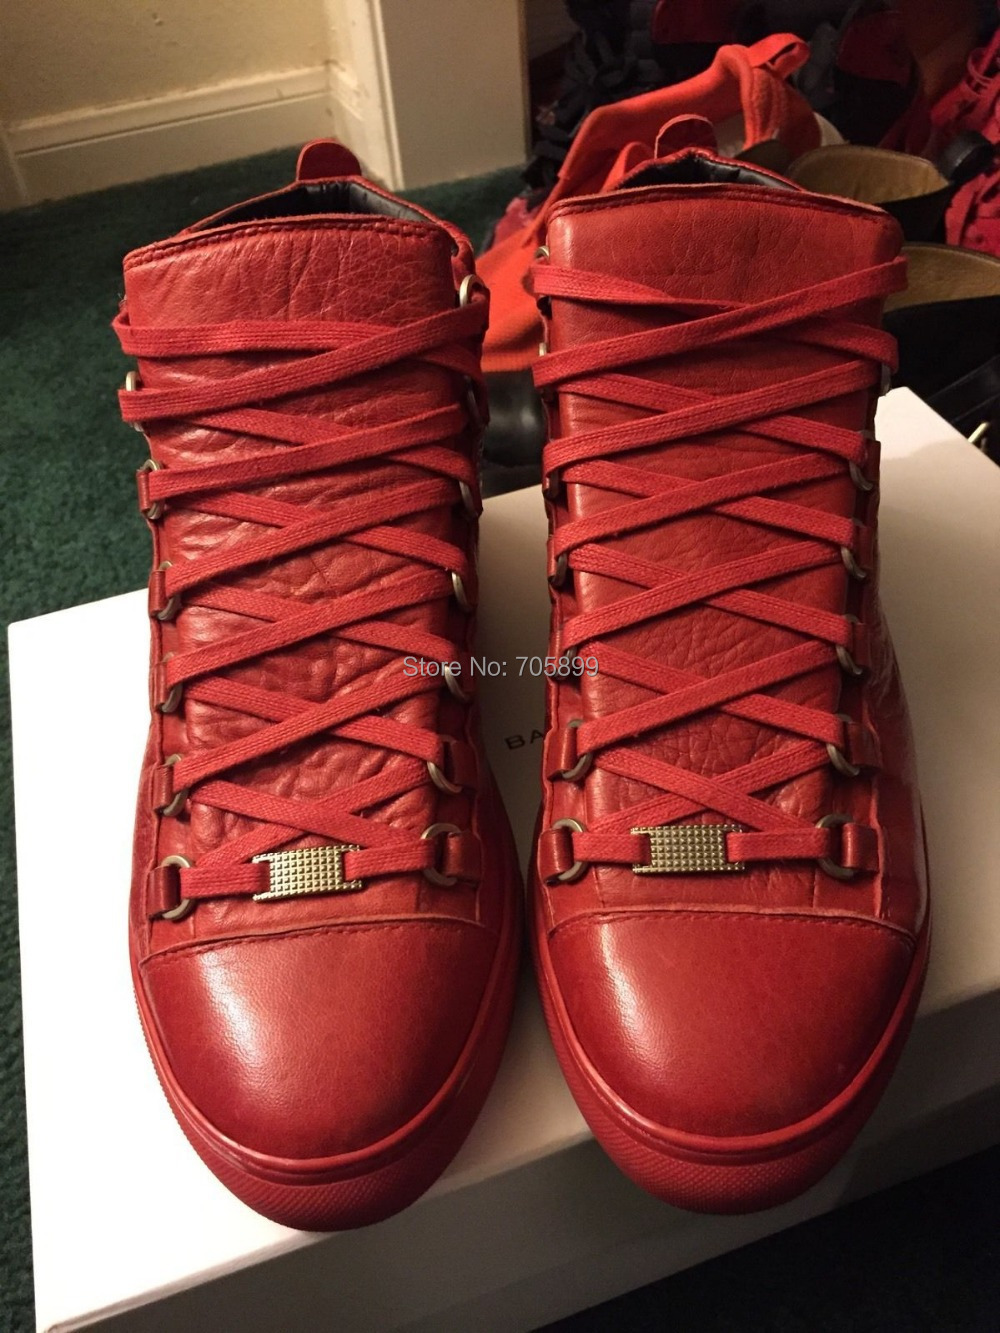 Free Shipping Dropship 99% original brand Boots Red Arena Sneakers Mens Fashion High Top Best Leather Running West Footwear US12(China (Mainland))